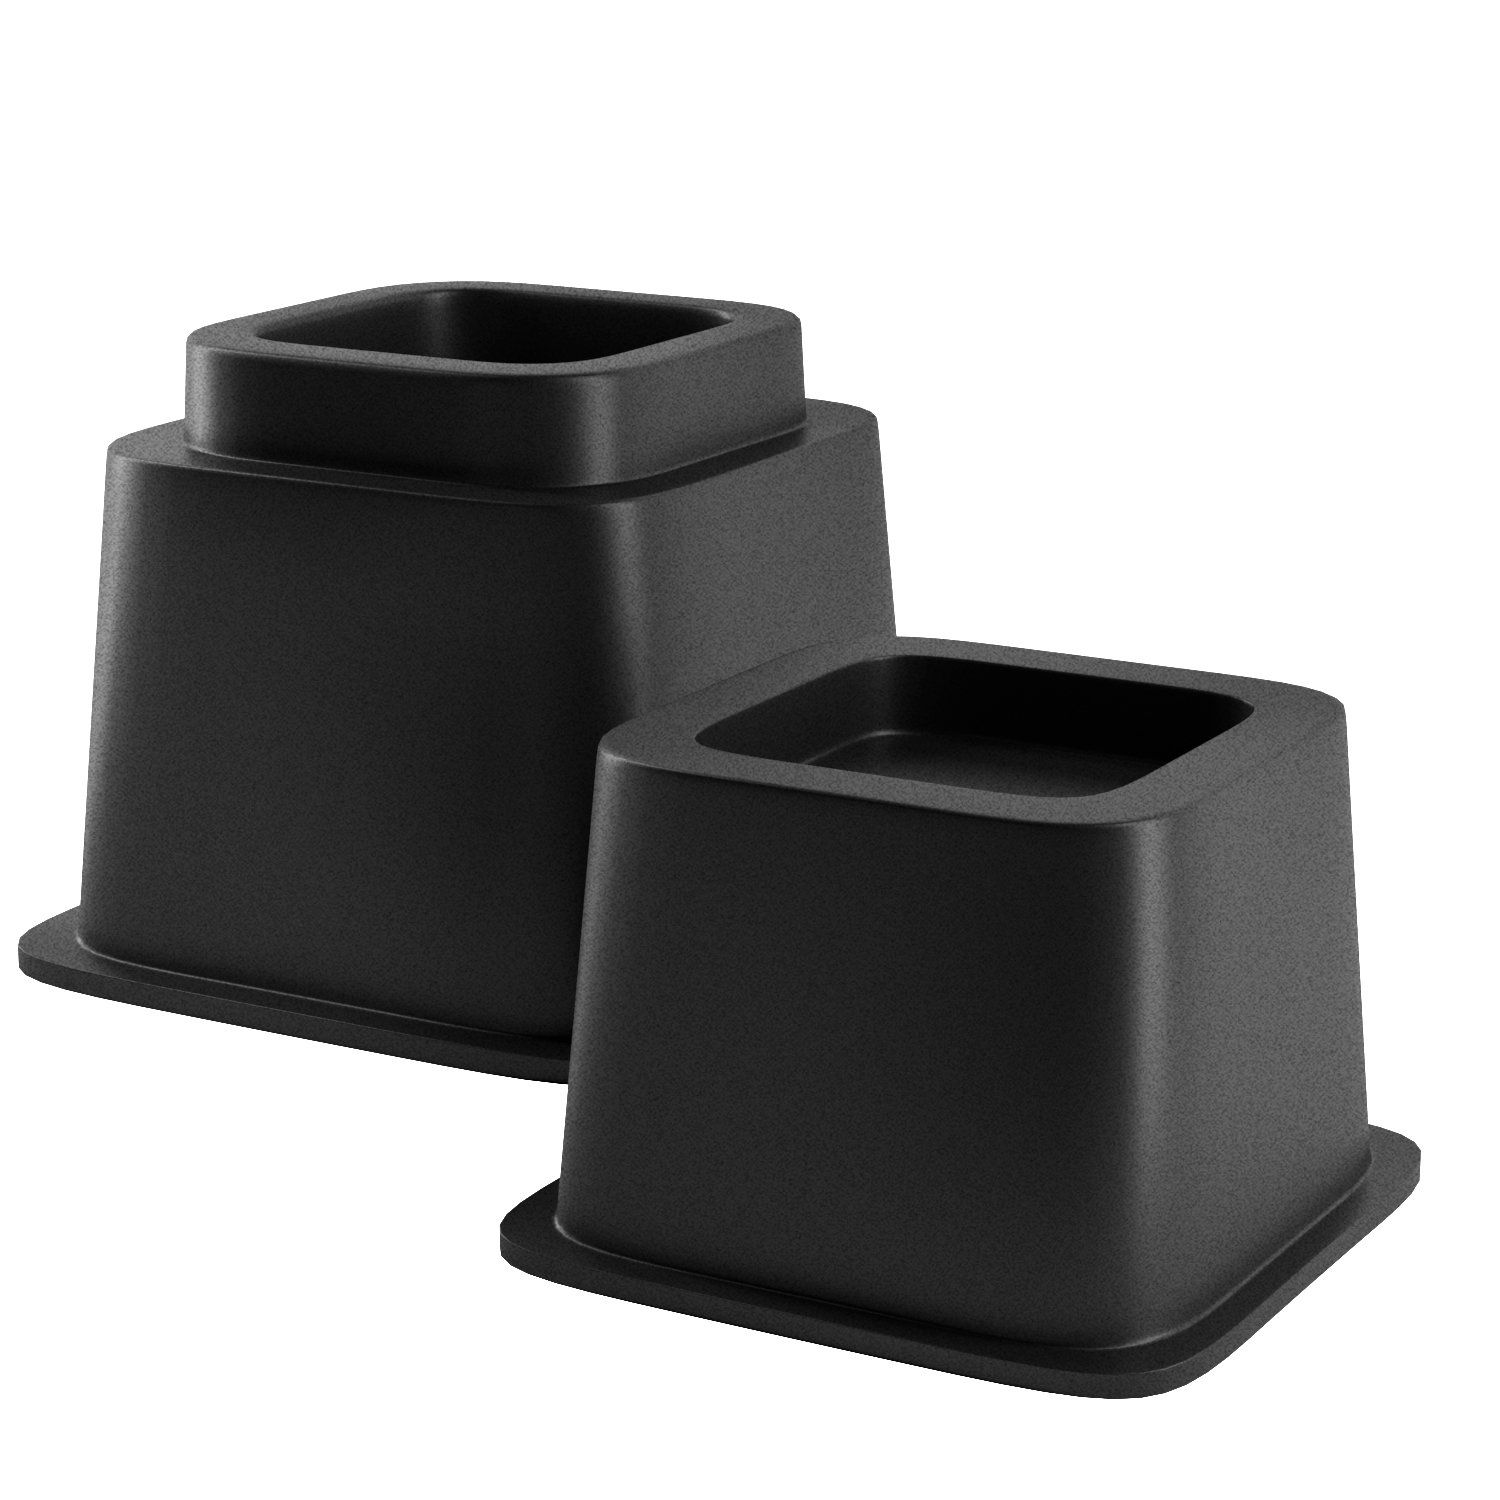 Home Intuition Heavy Duty Adjustable Bed Risers Or Furniture Riser